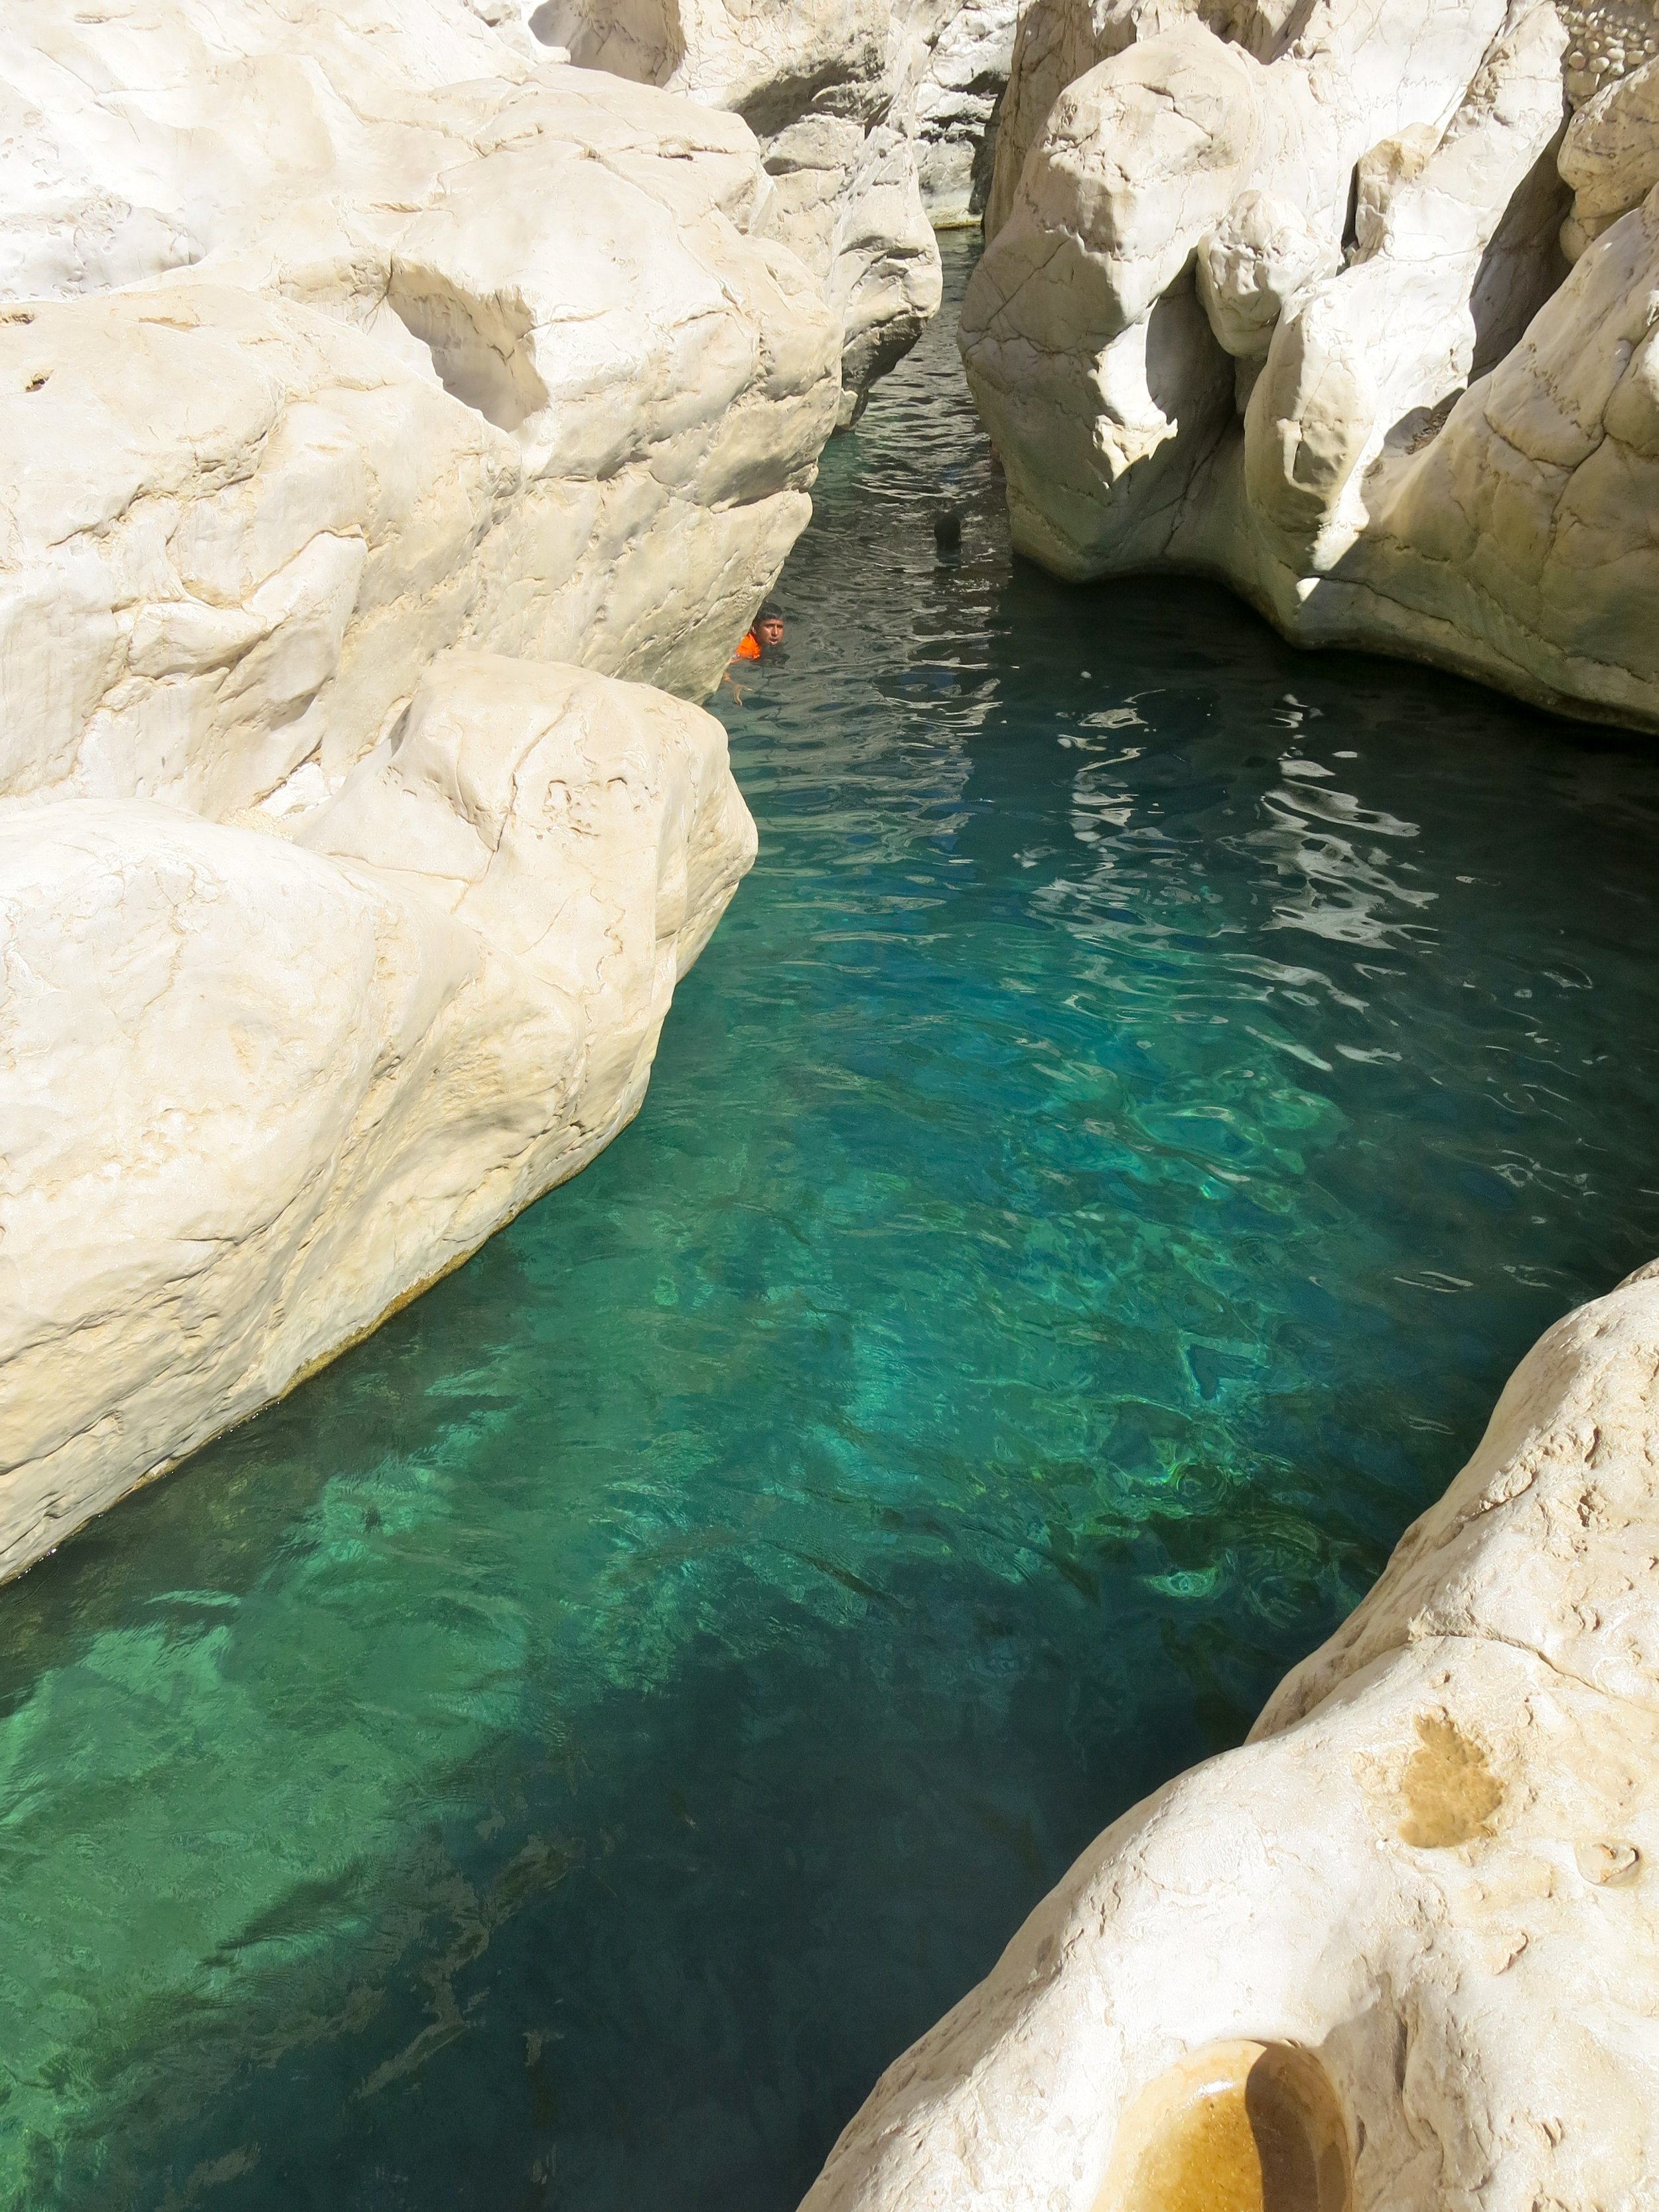 The turquoise clear water of Wadi Bani Khalid